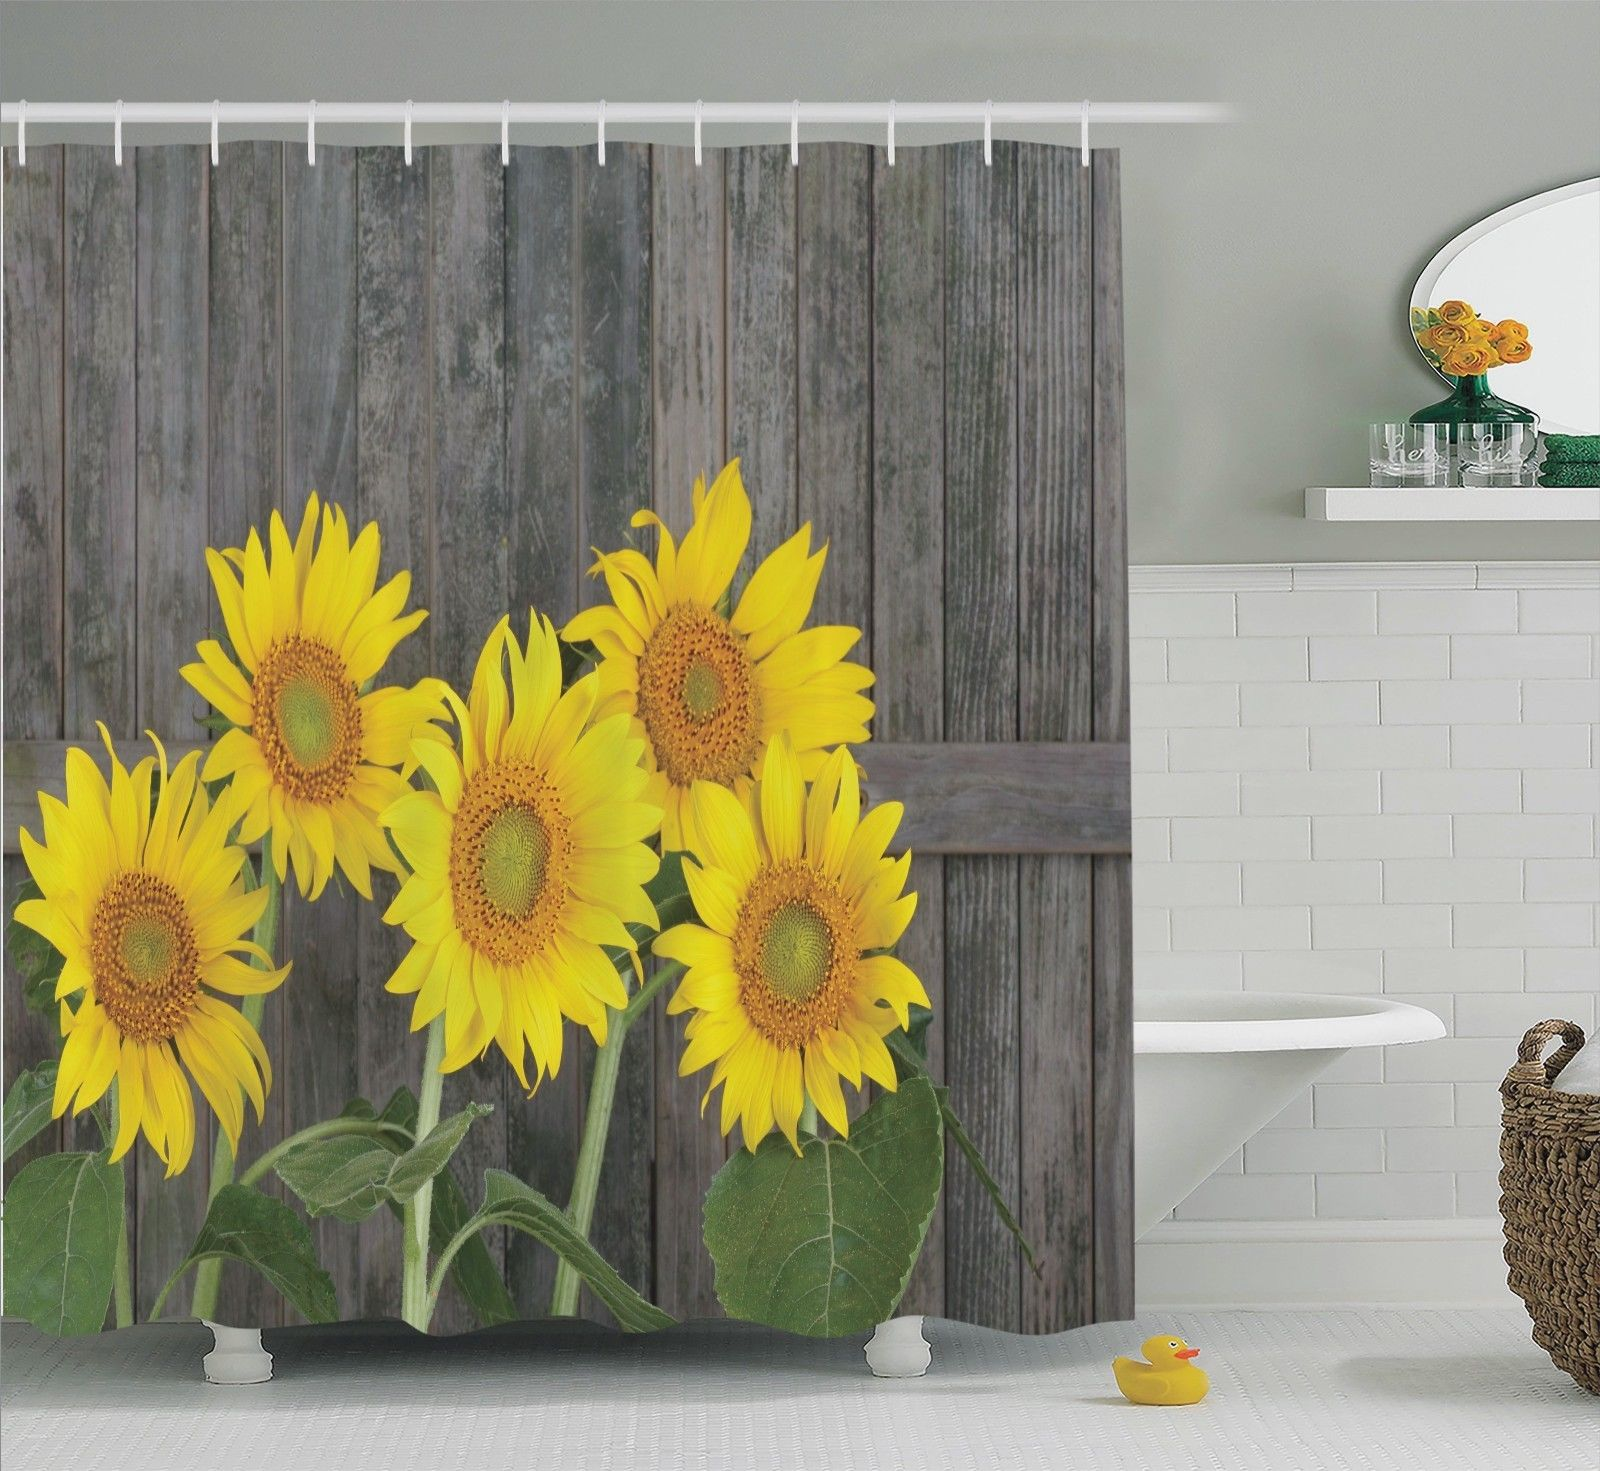 Sunflower Decor Shower Curtain Set, Helianthus Sunflowers Against Weathered Aged Fence Summer Garden Photo Print, Bathroom Accessories, 69W X 70L Inches, By Ambesonne